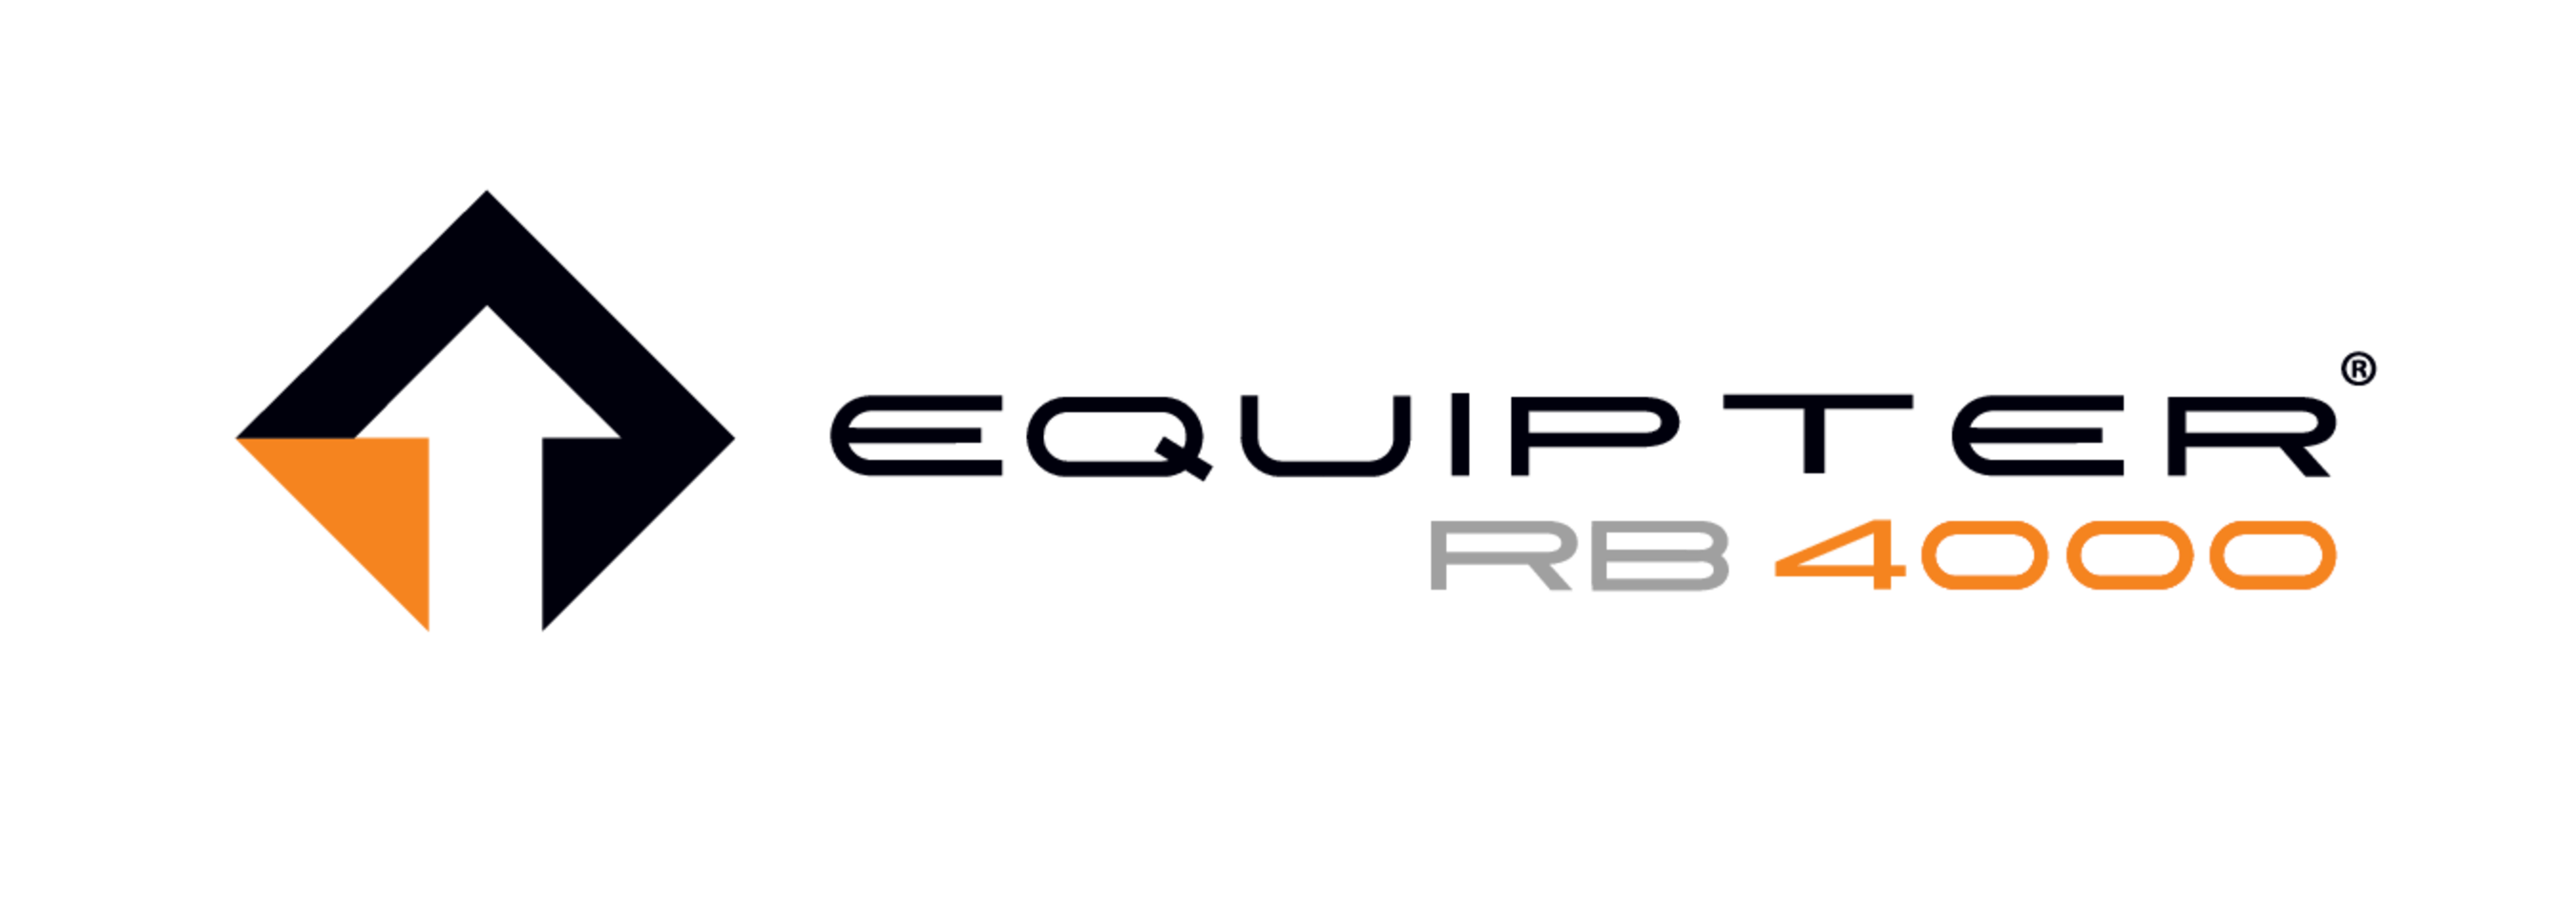 RB4000 Full Logo